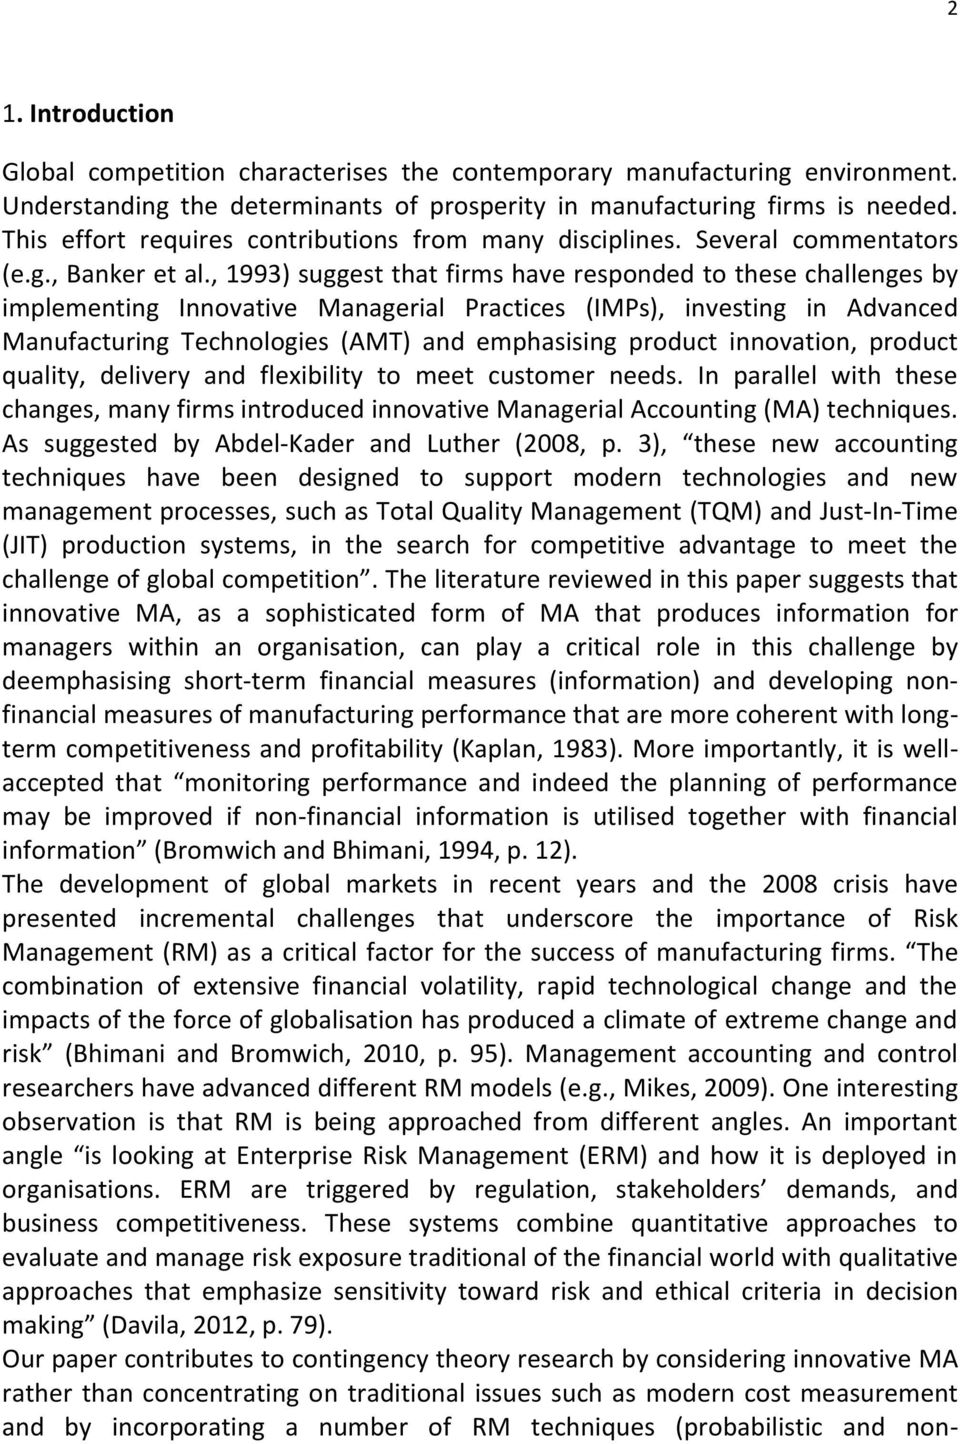 , 1993) suggest that firms have responded to these challenges by implementing Innovative Managerial Practices (IMPs), investing in Advanced Manufacturing Technologies (AMT) and emphasising product